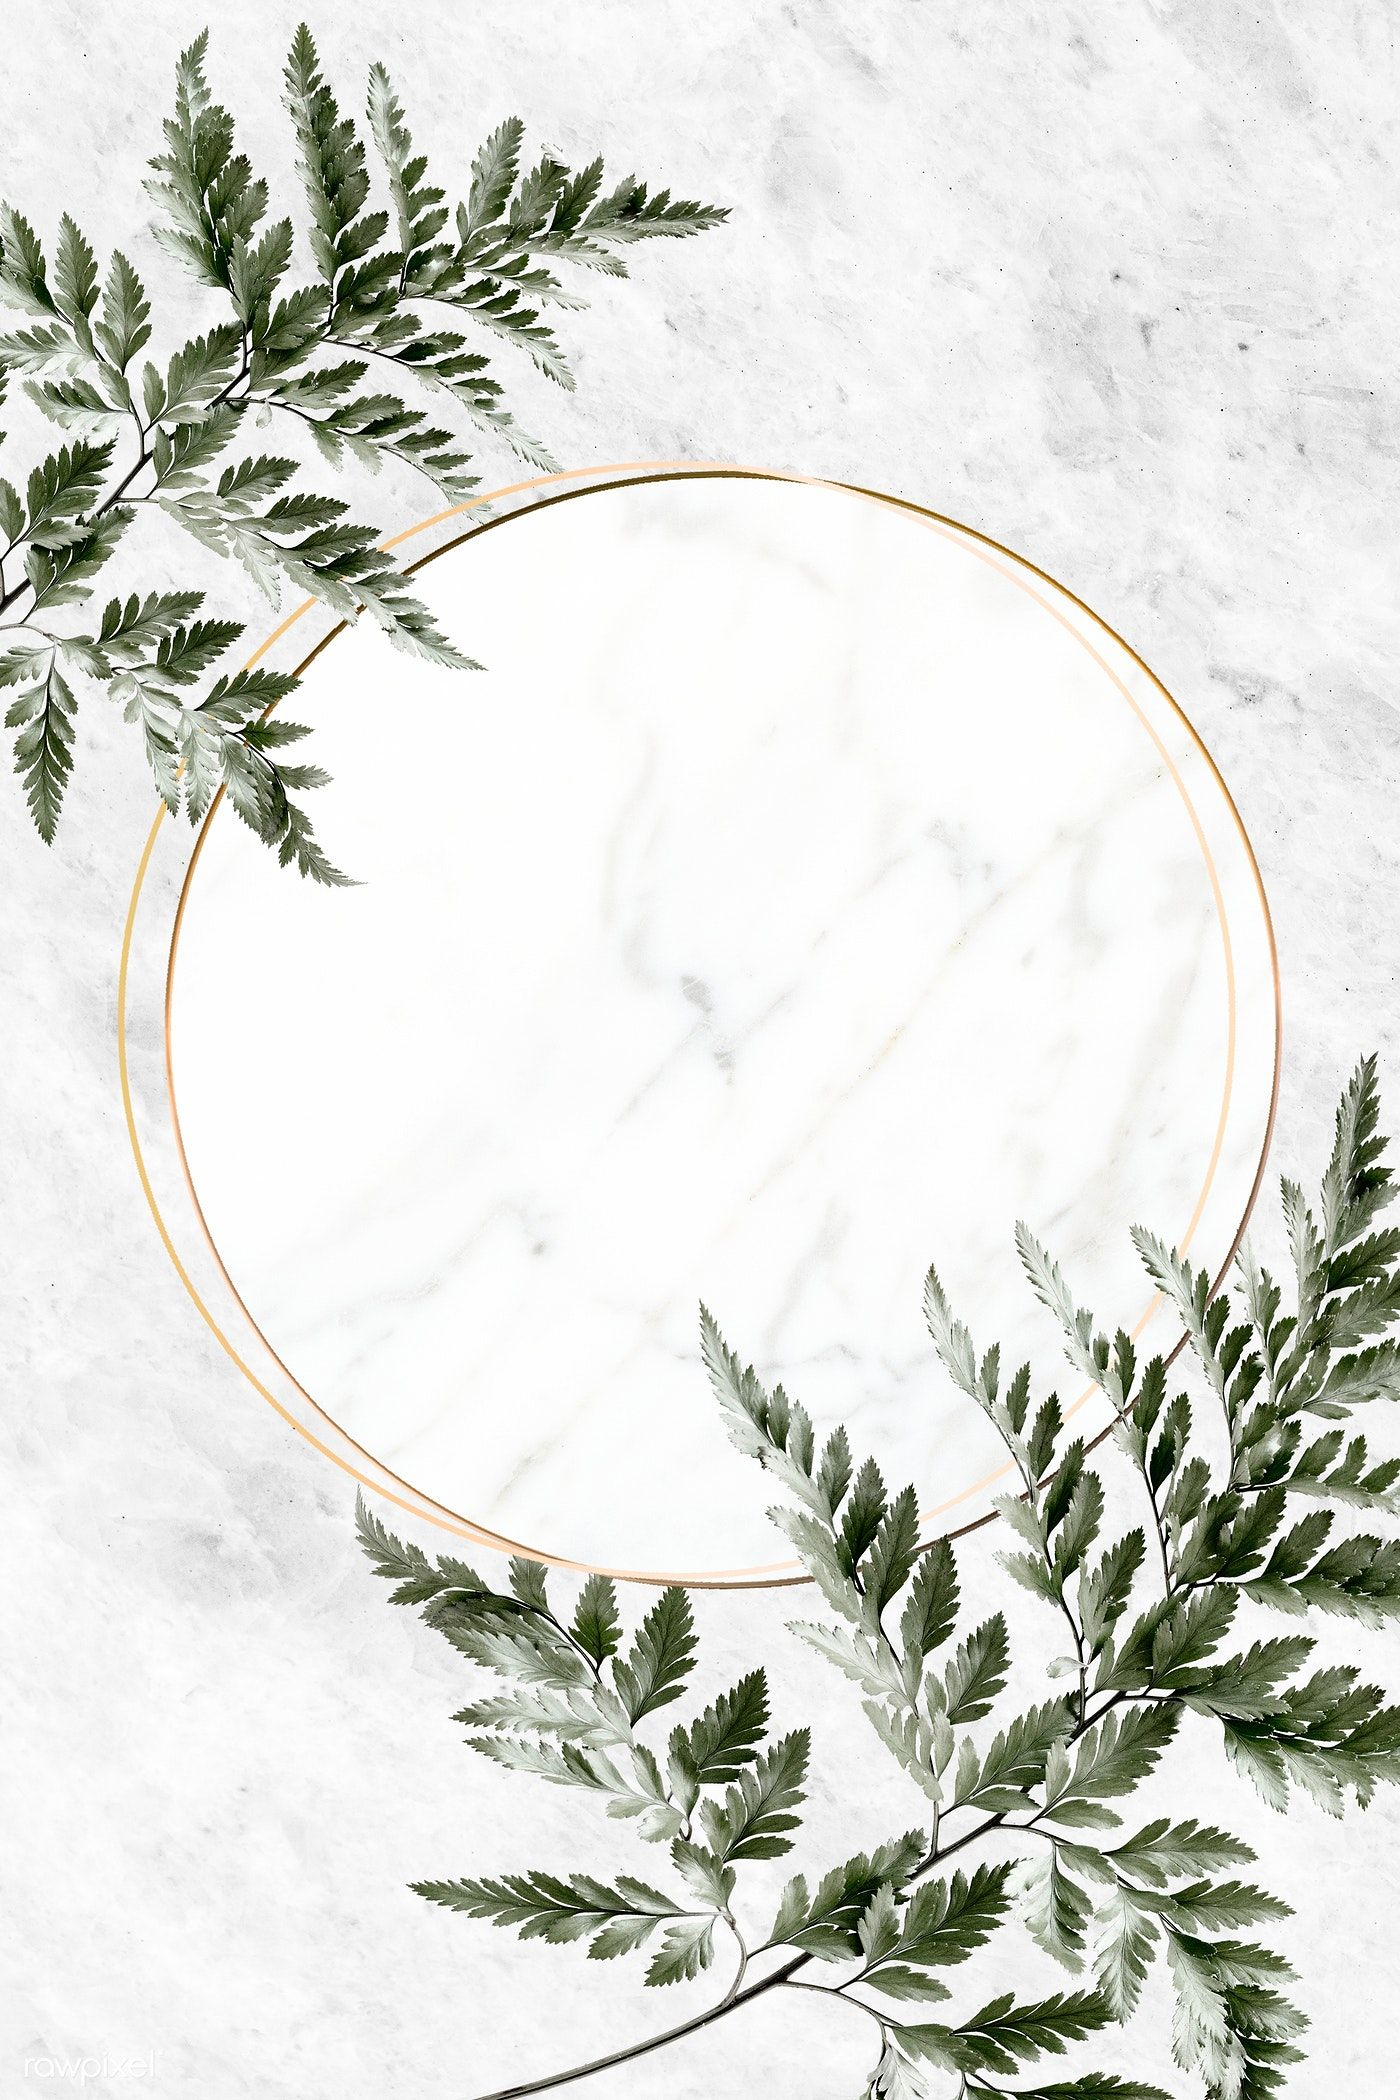 Download premium illustration of Round golden frame on a marble background